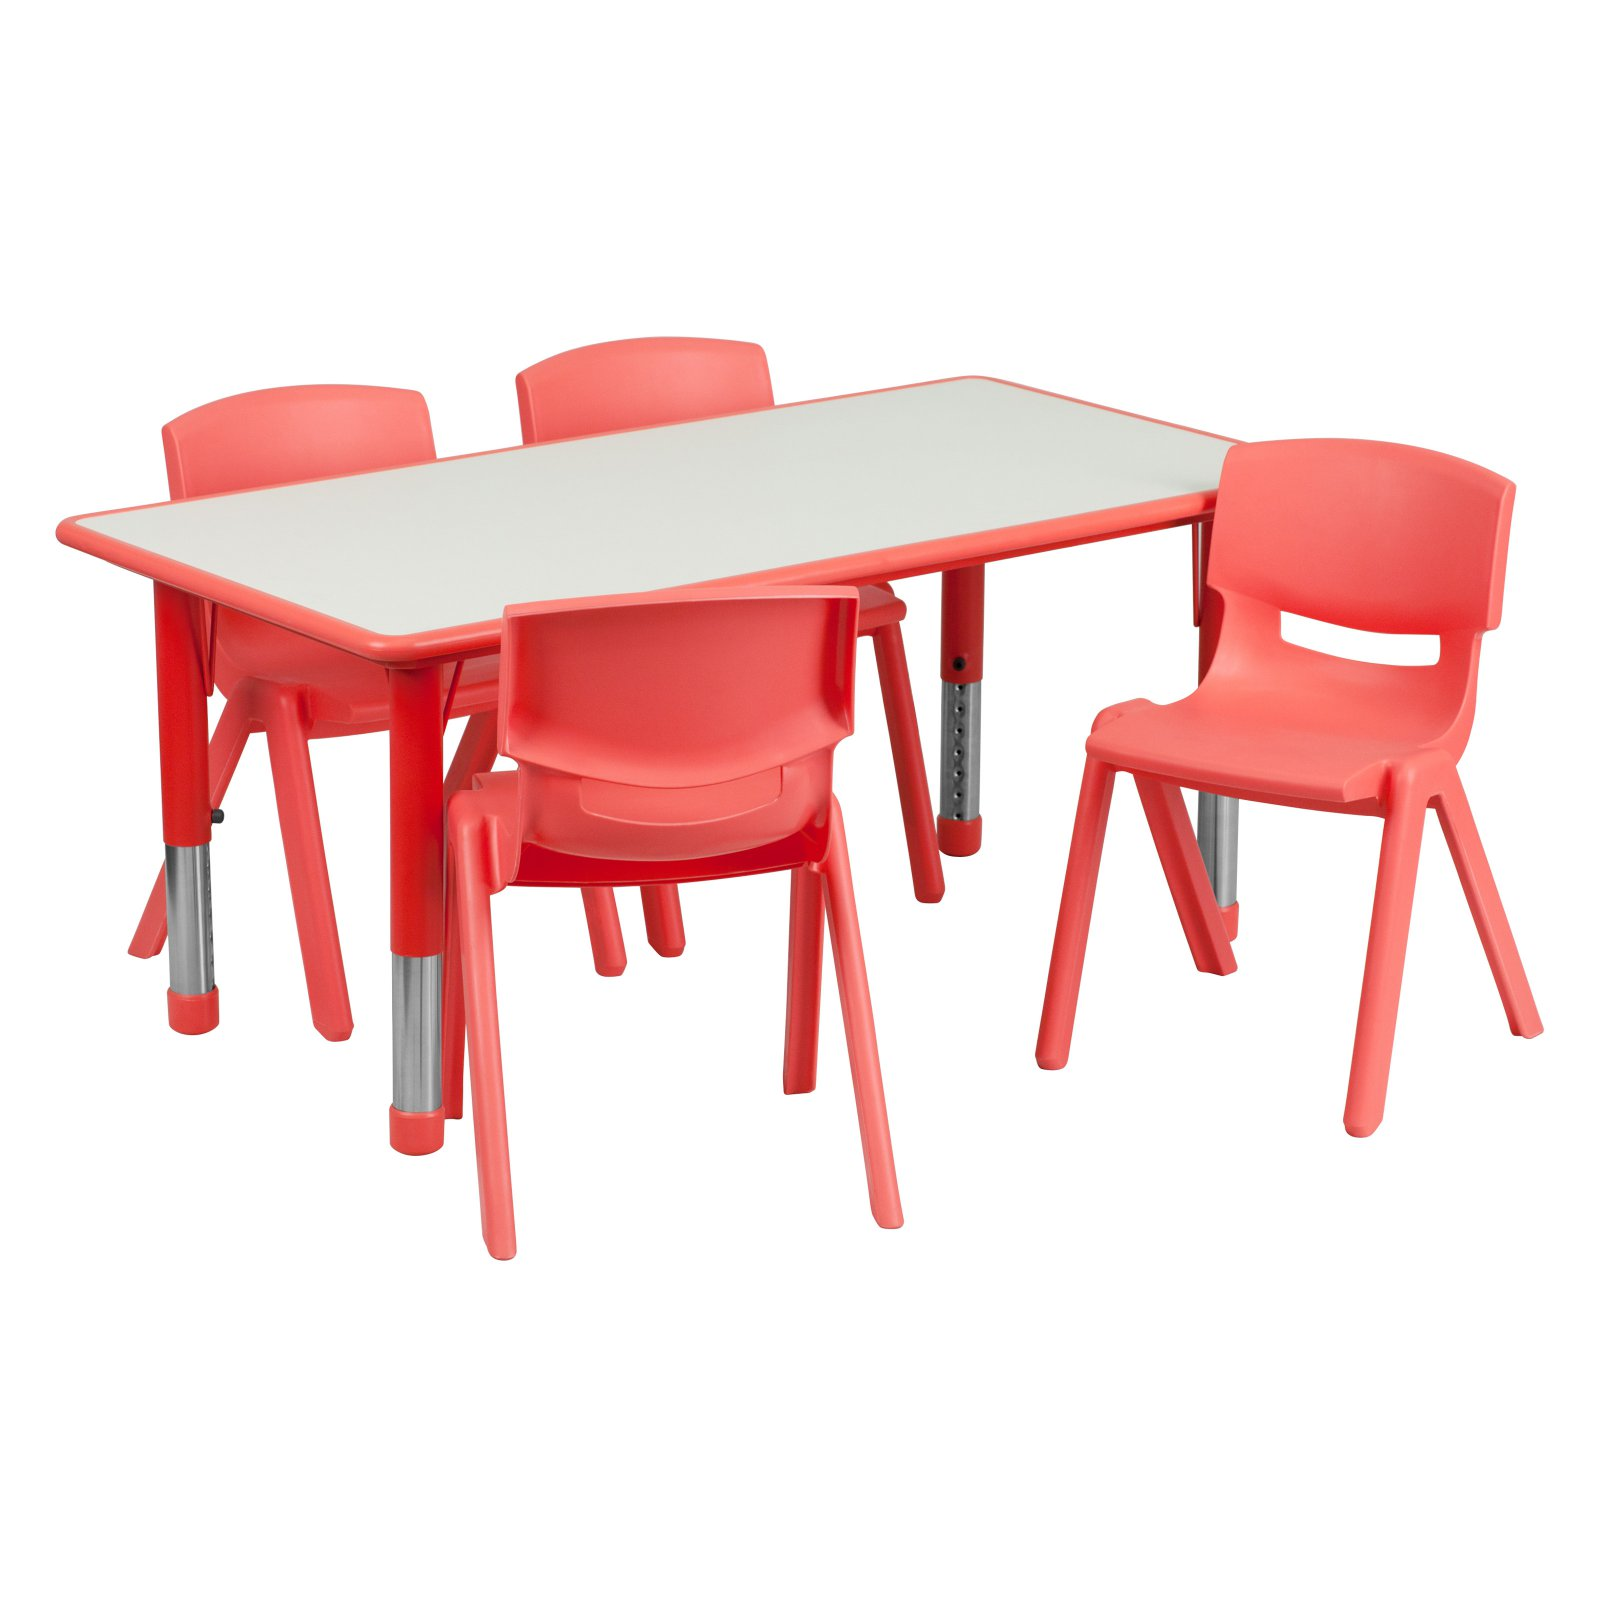 Flash Furniture 23.625''W x 47.25''L Adjustable Rectangular Plastic Activity Table Set in Multiple Colors with 4 School Stack Chairs, Grey